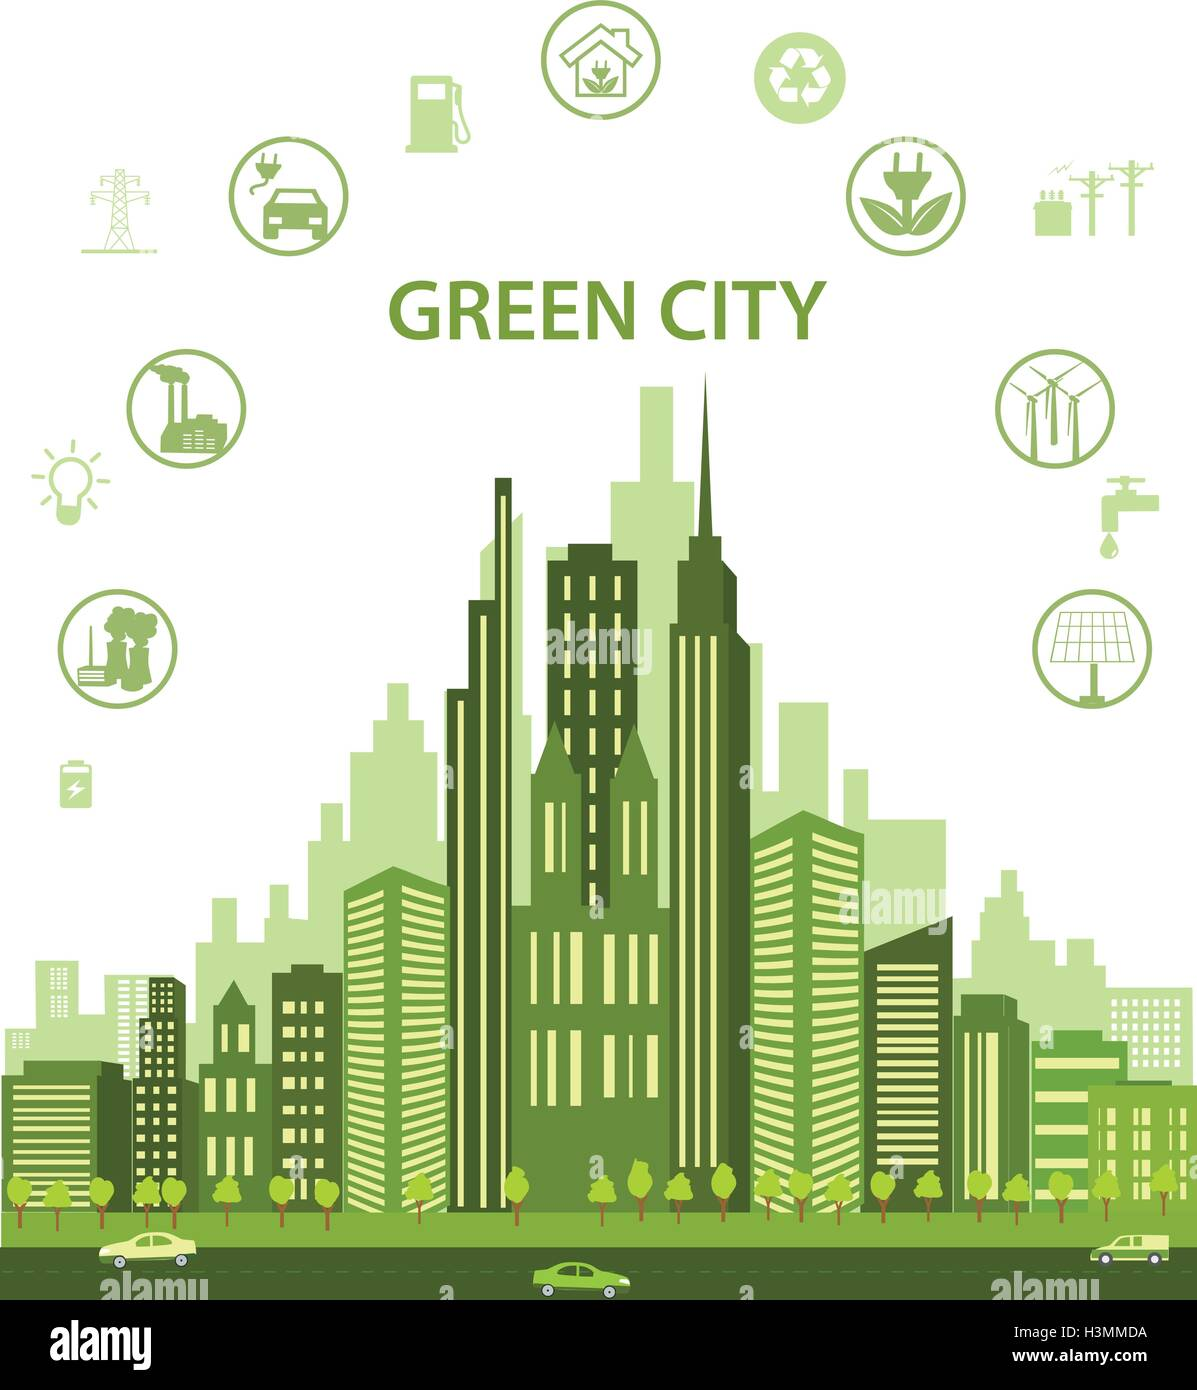 Green city concept with different icons and eco symbols. Modern city design with future technology for living. - Stock Vector